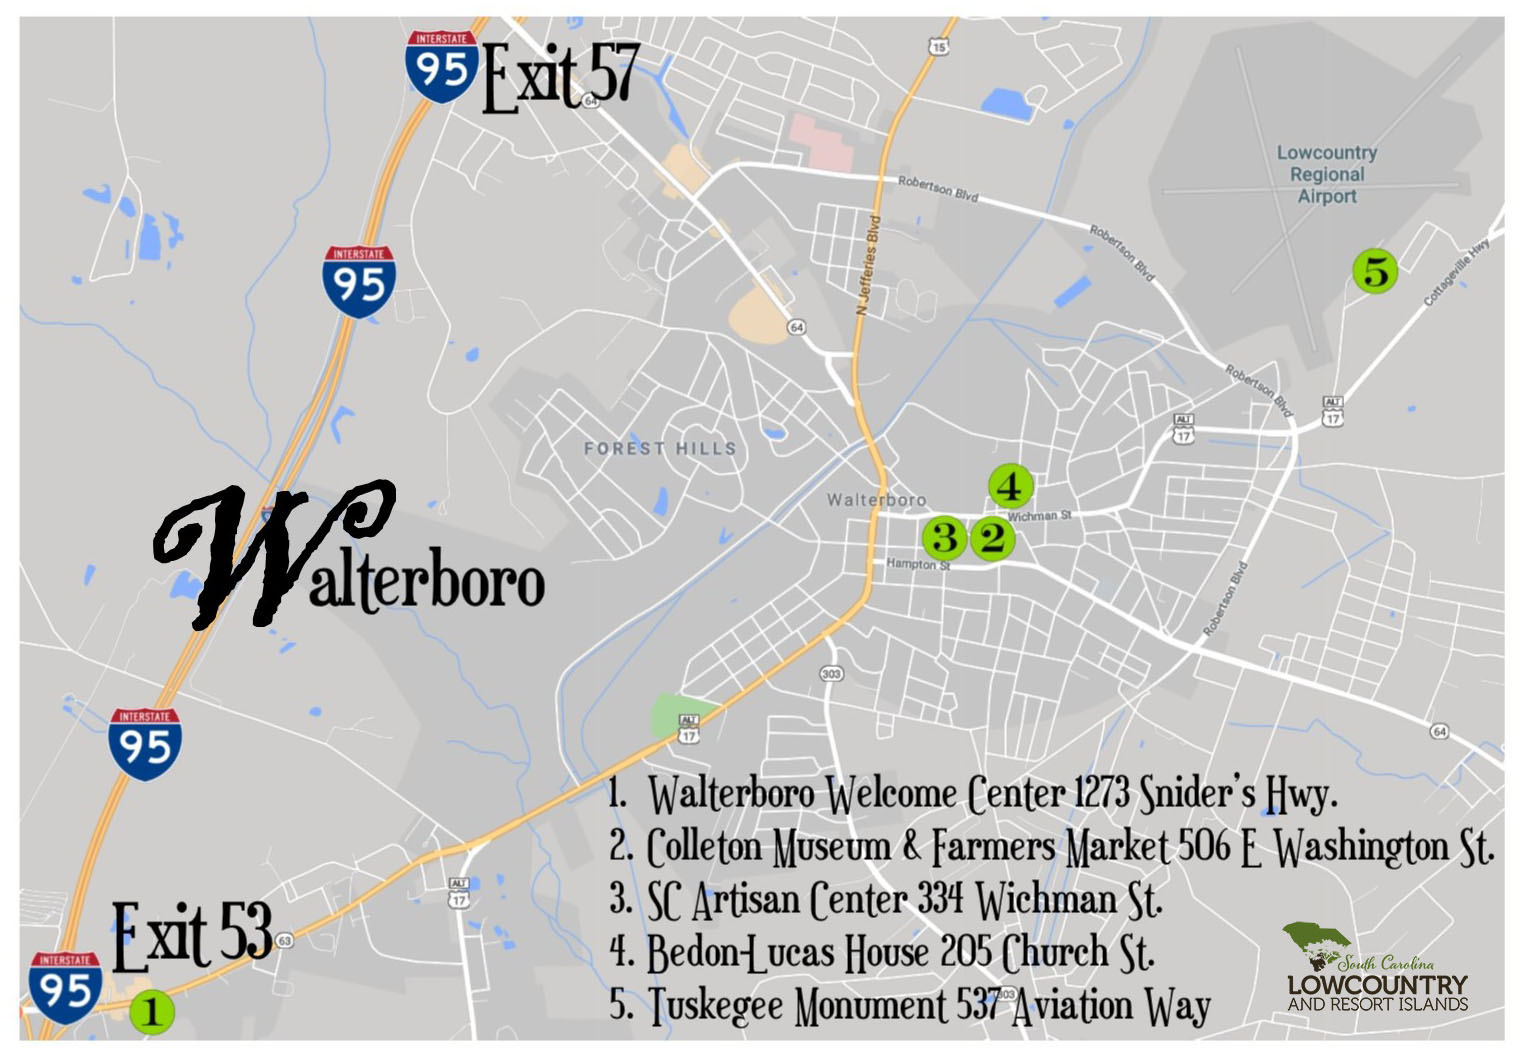 Walterboro Attractions map